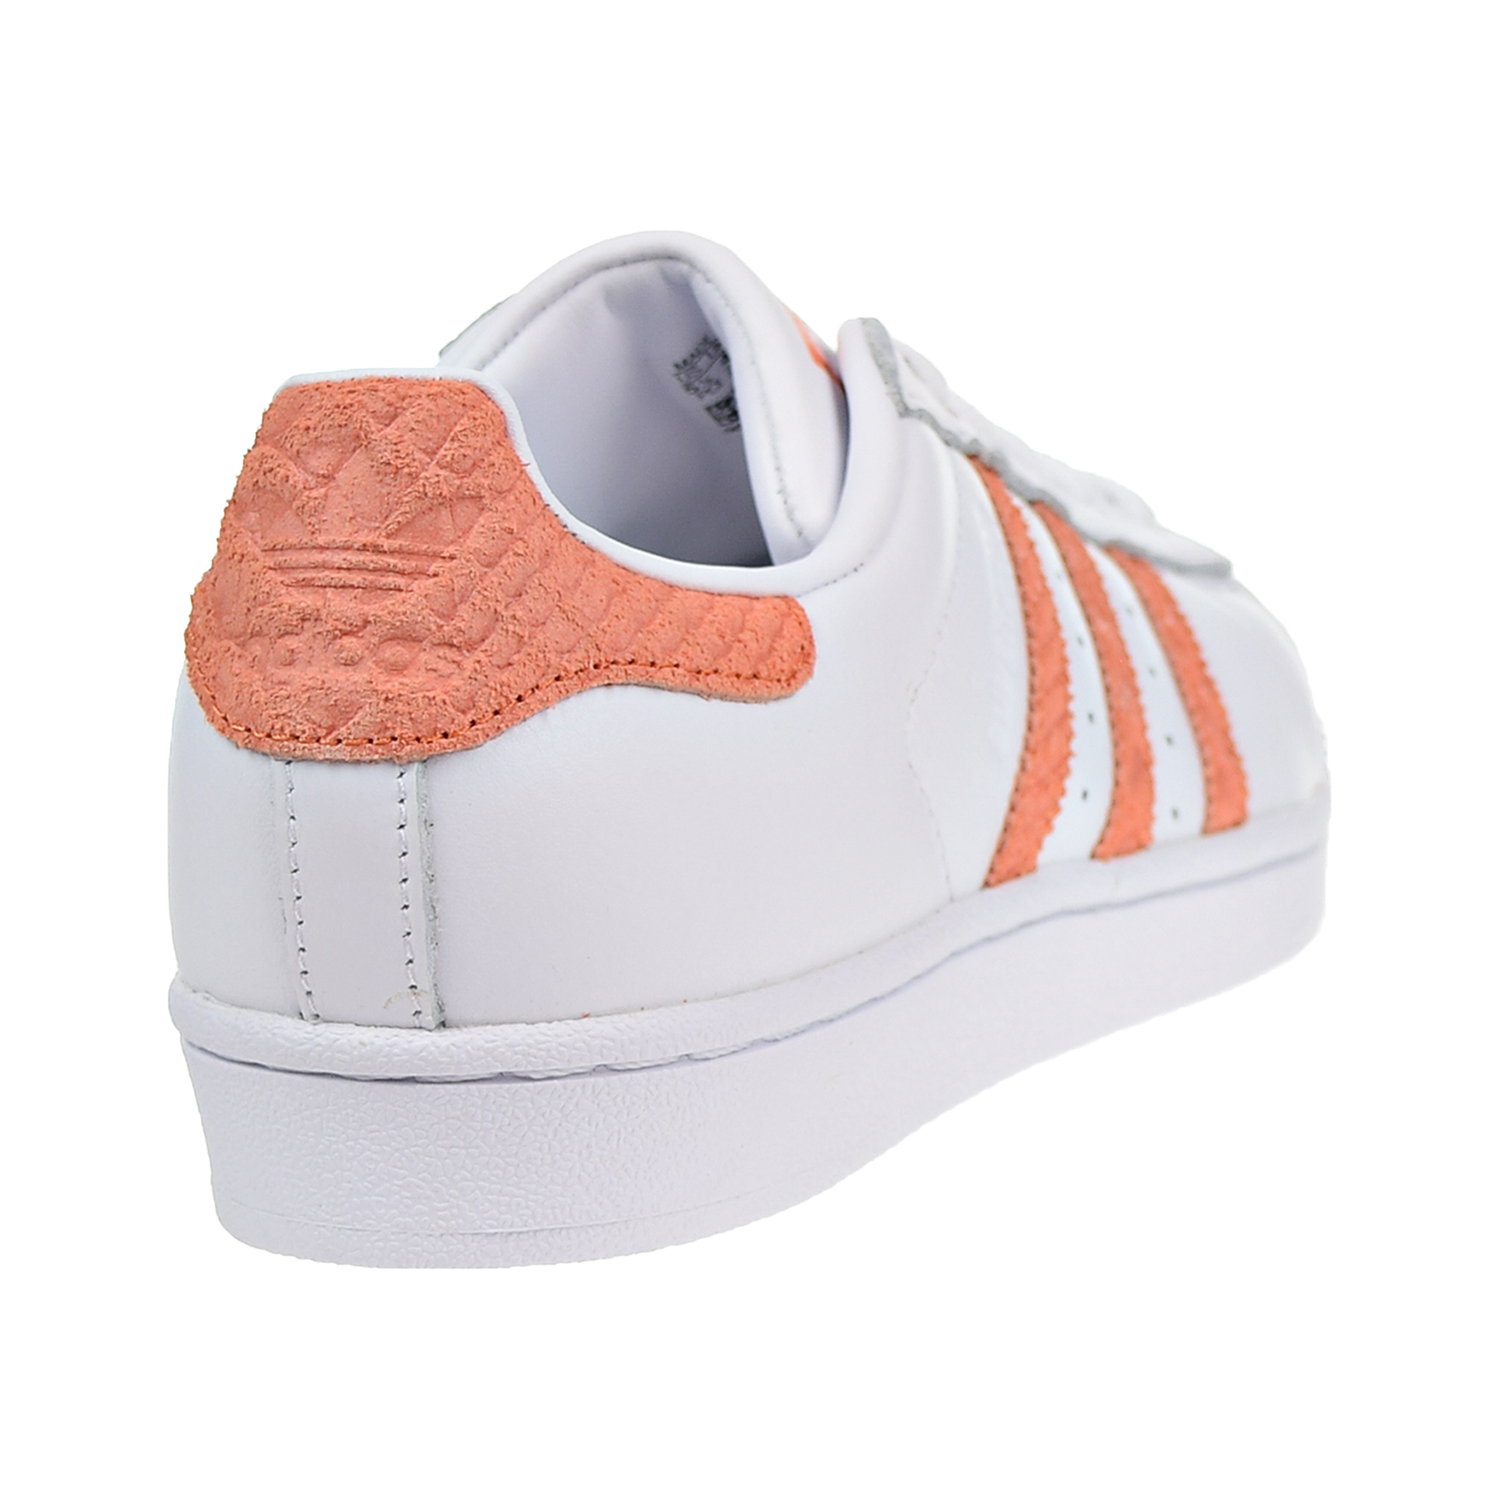 72d31a487c Adidas Superstar W Women s Shoes Footwear White Chalk Coral Off White cg5462